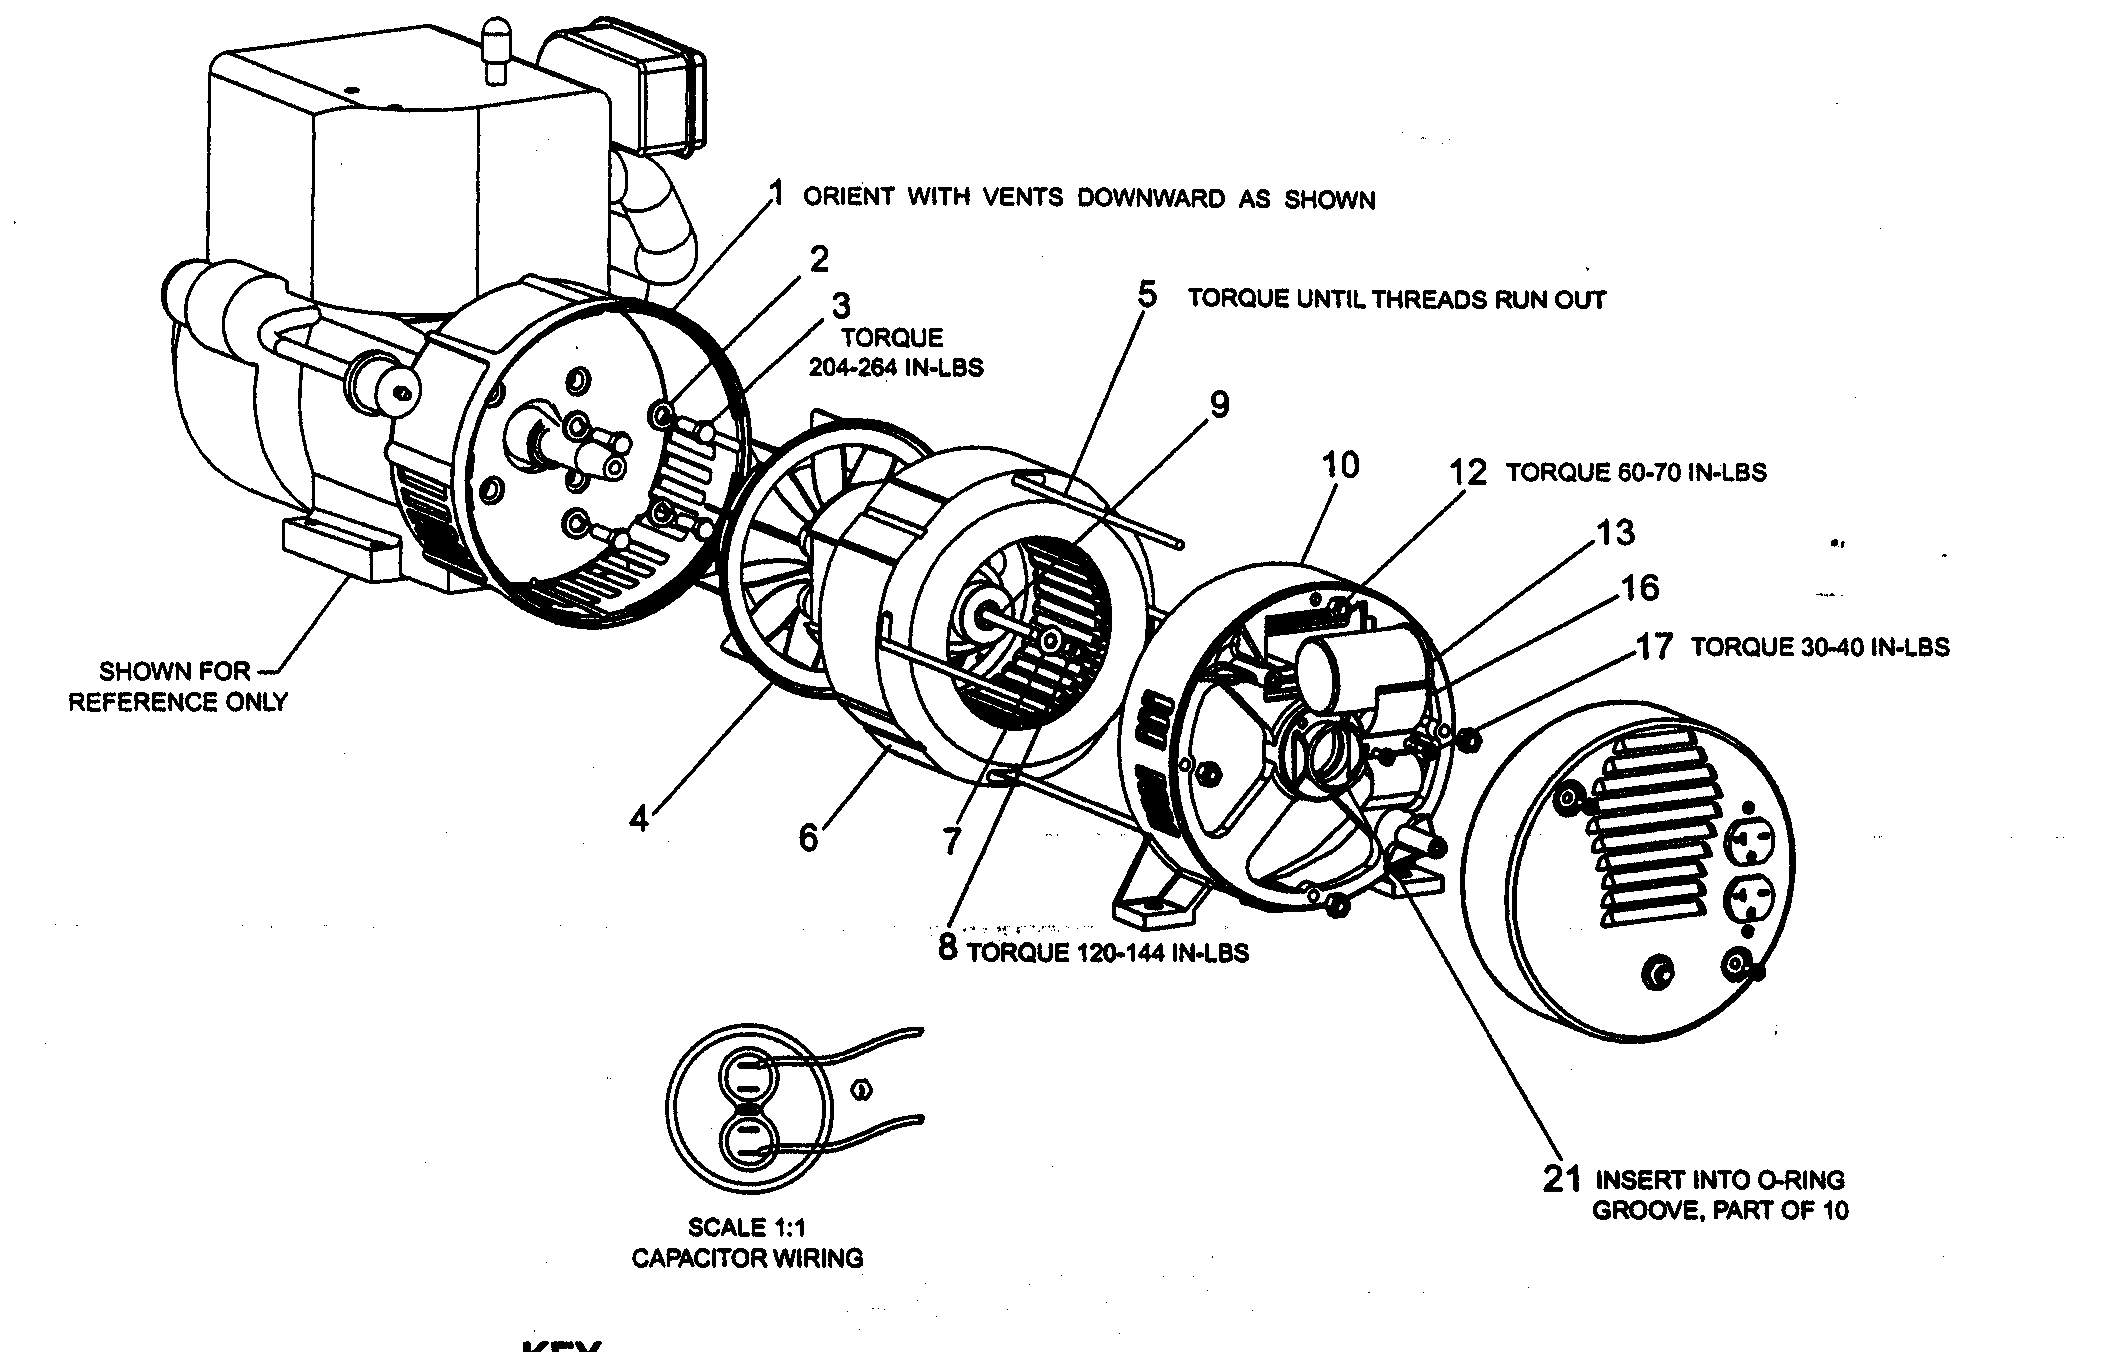 30 Amp Dryer Wiring Diagram